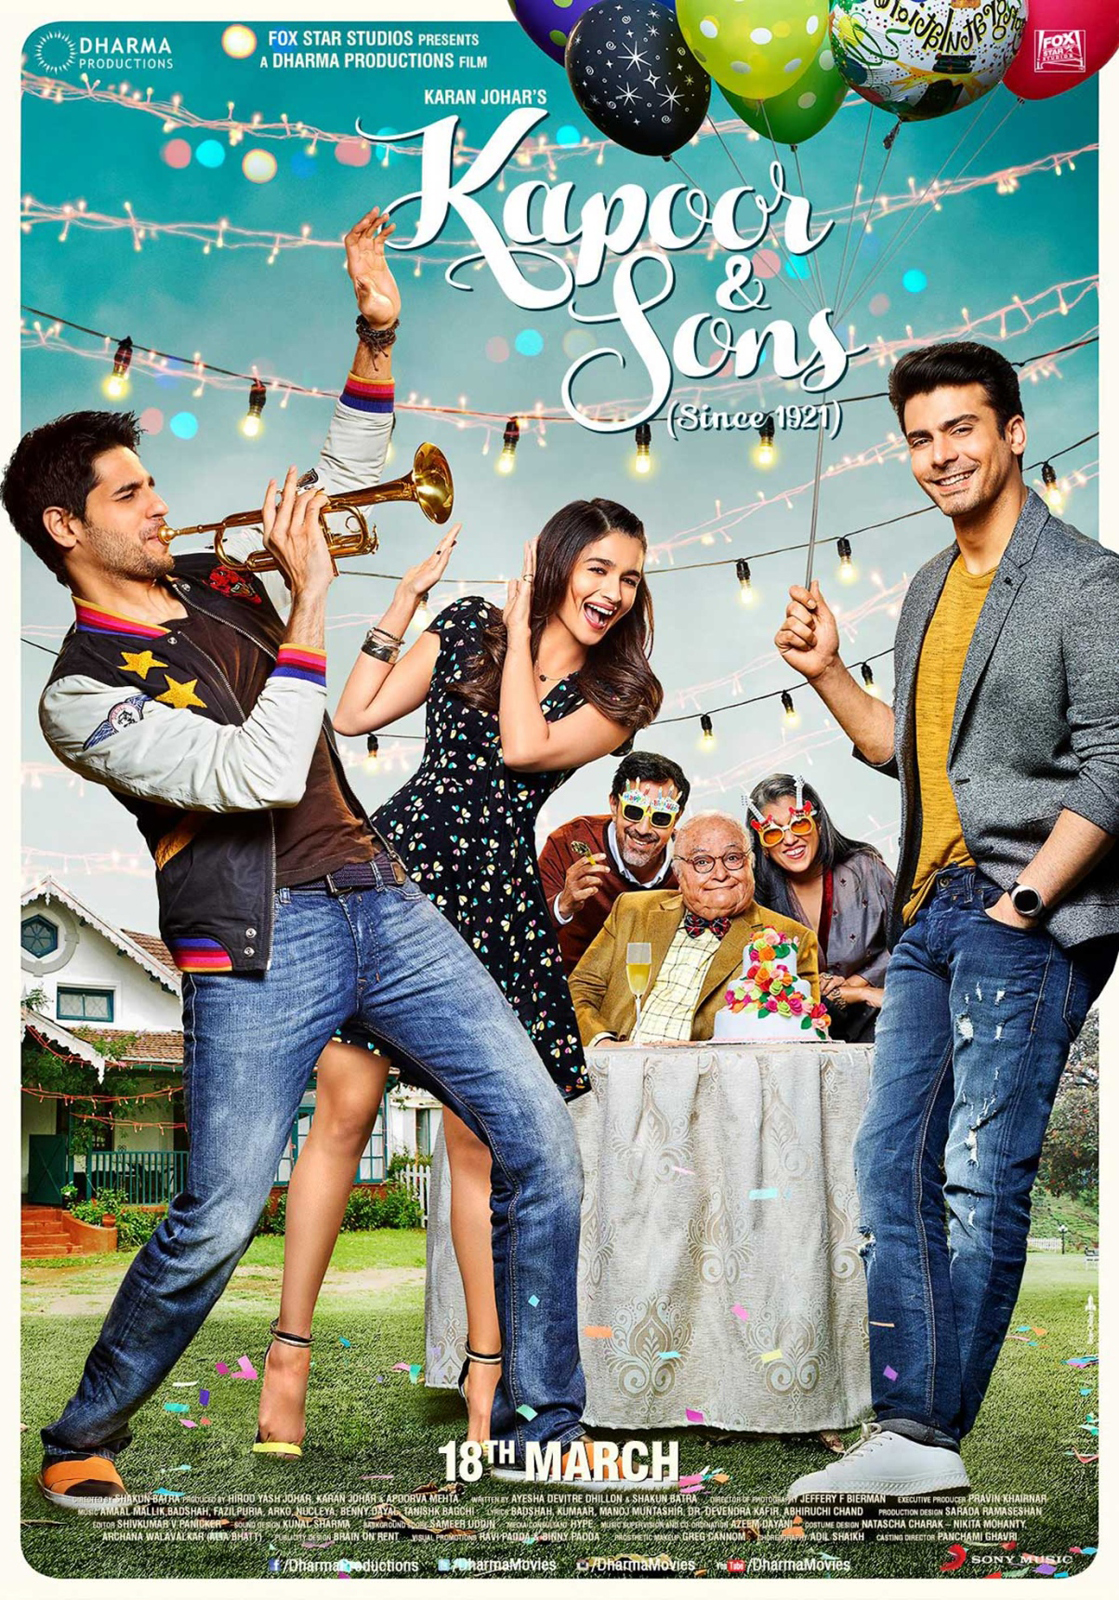 Kapoor and Sons Streaming 1080p HDLight